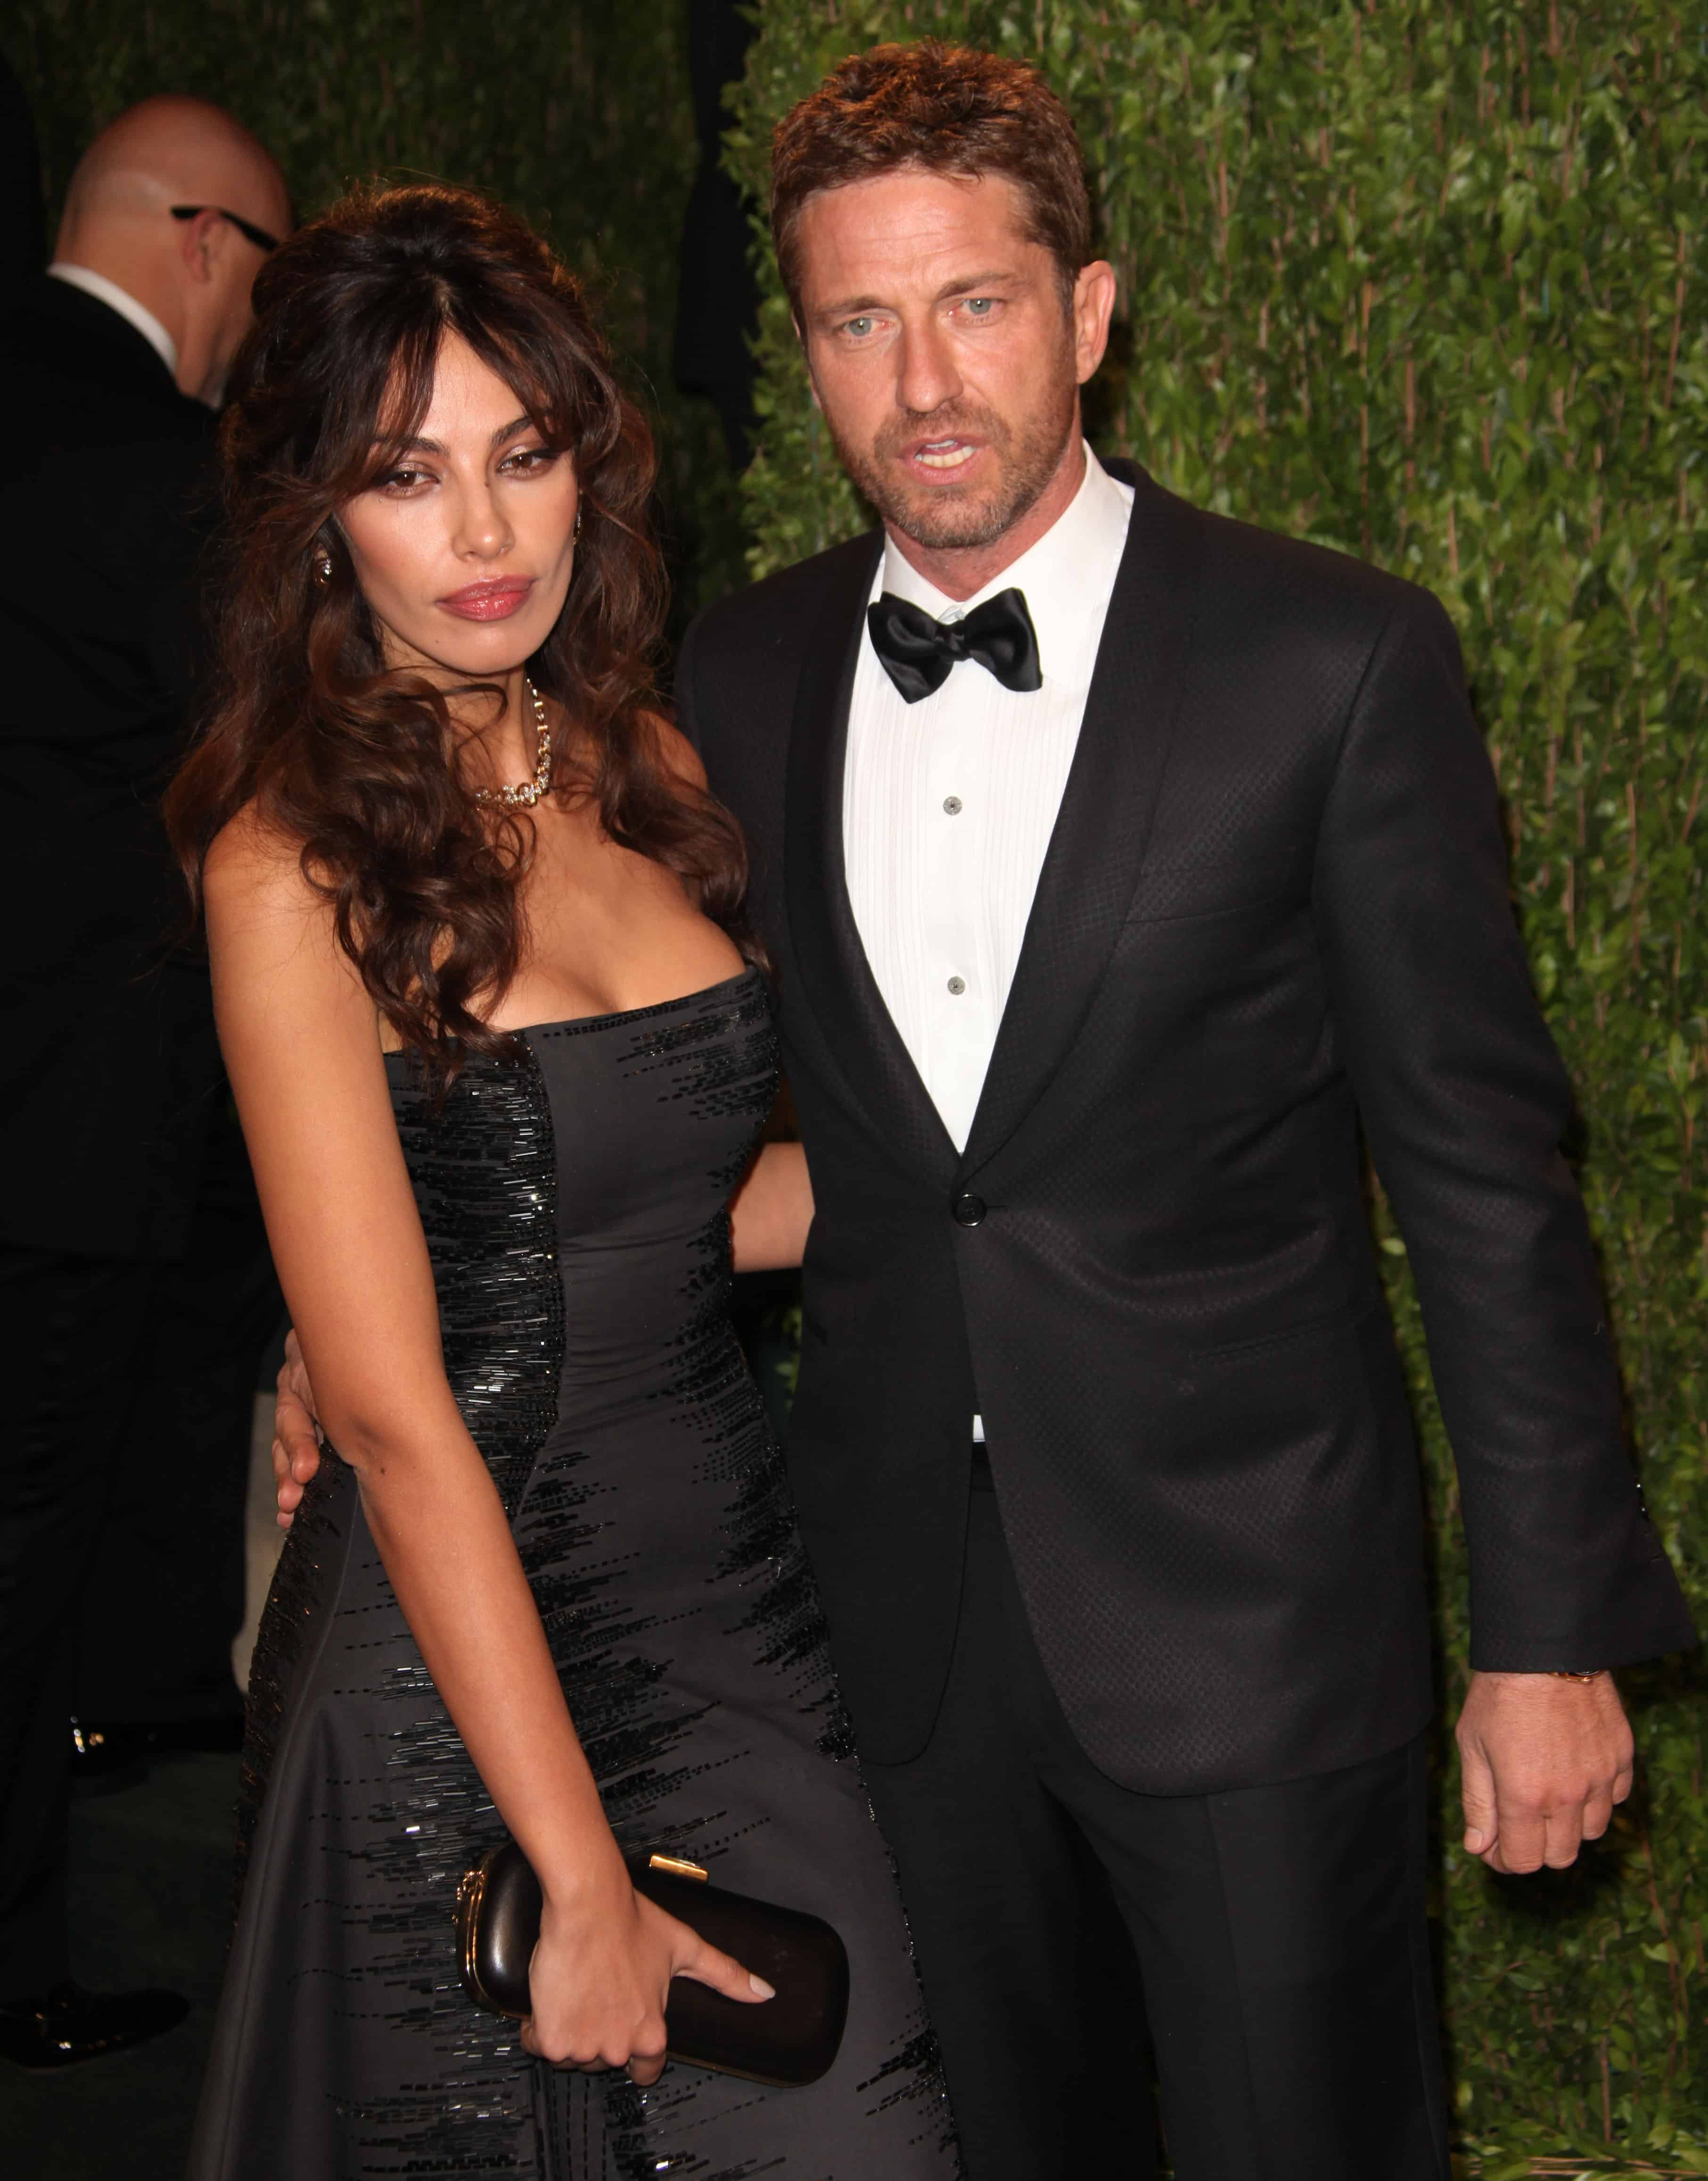 1 How Celebrities Partied After The Oscars? Sneak Peak Into The Vanity Fair After party...